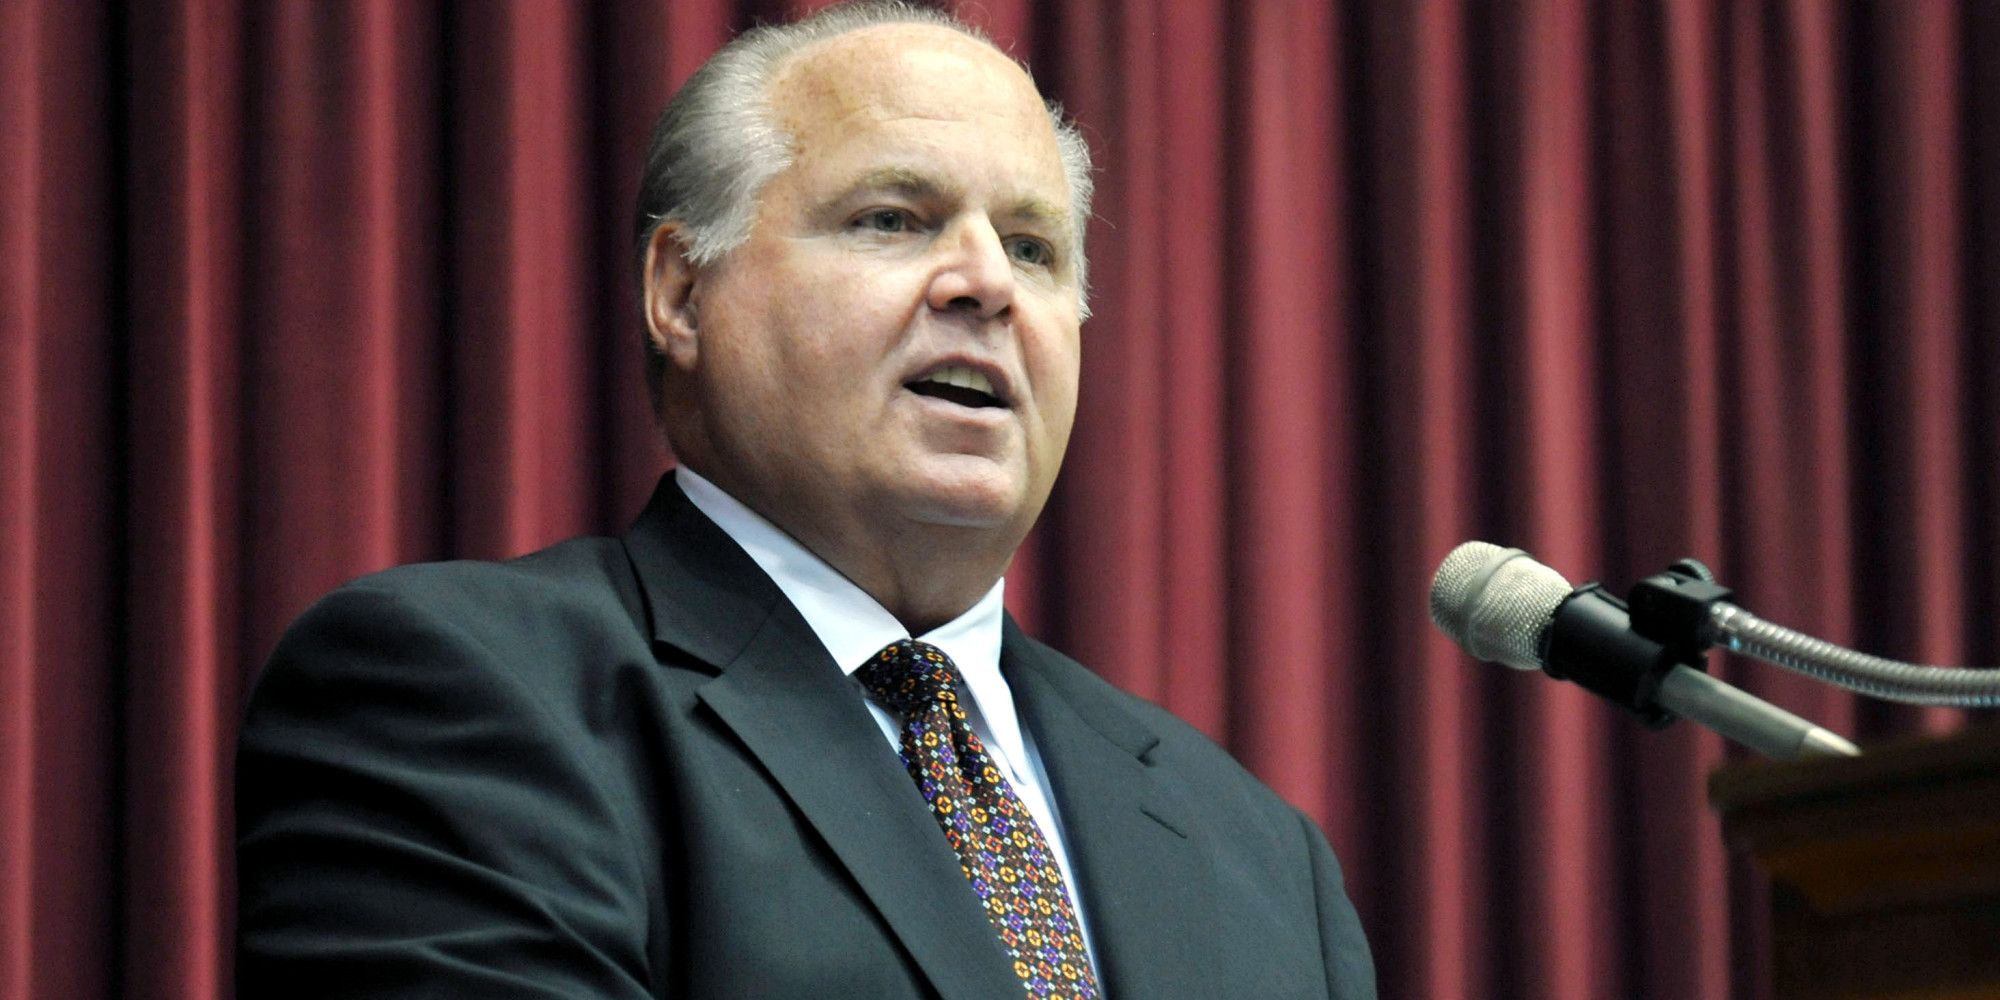 Why does Rush Limbaugh tell lies, and then deny that he lied (which is another lie)??